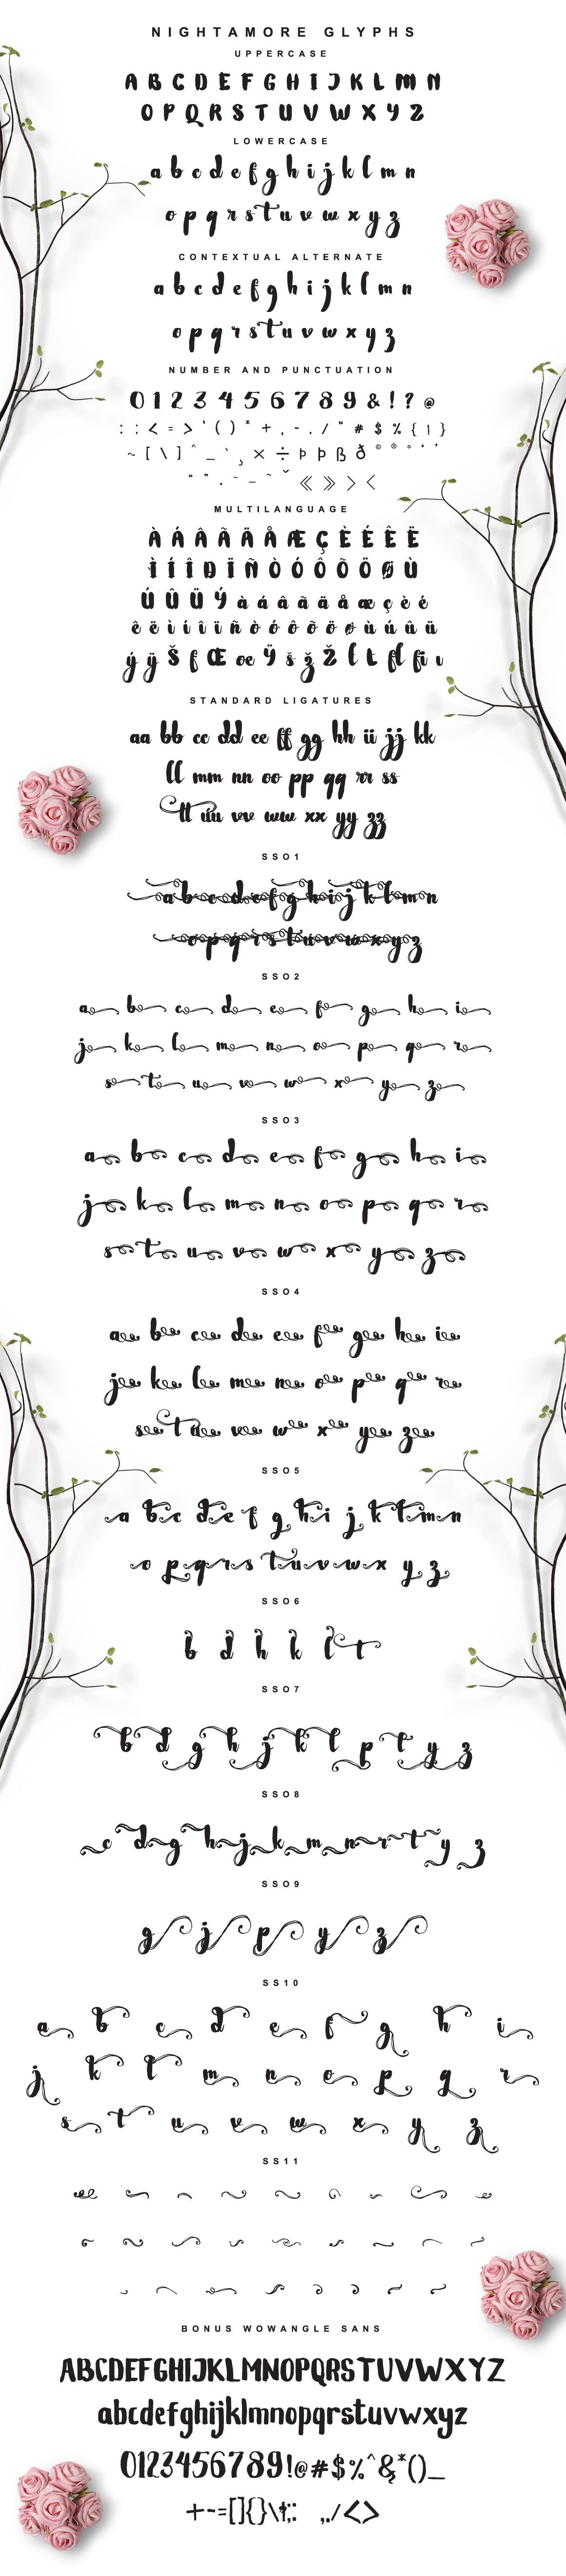 Nightamore Brush Calligraphy (Bonus Font) example image 10